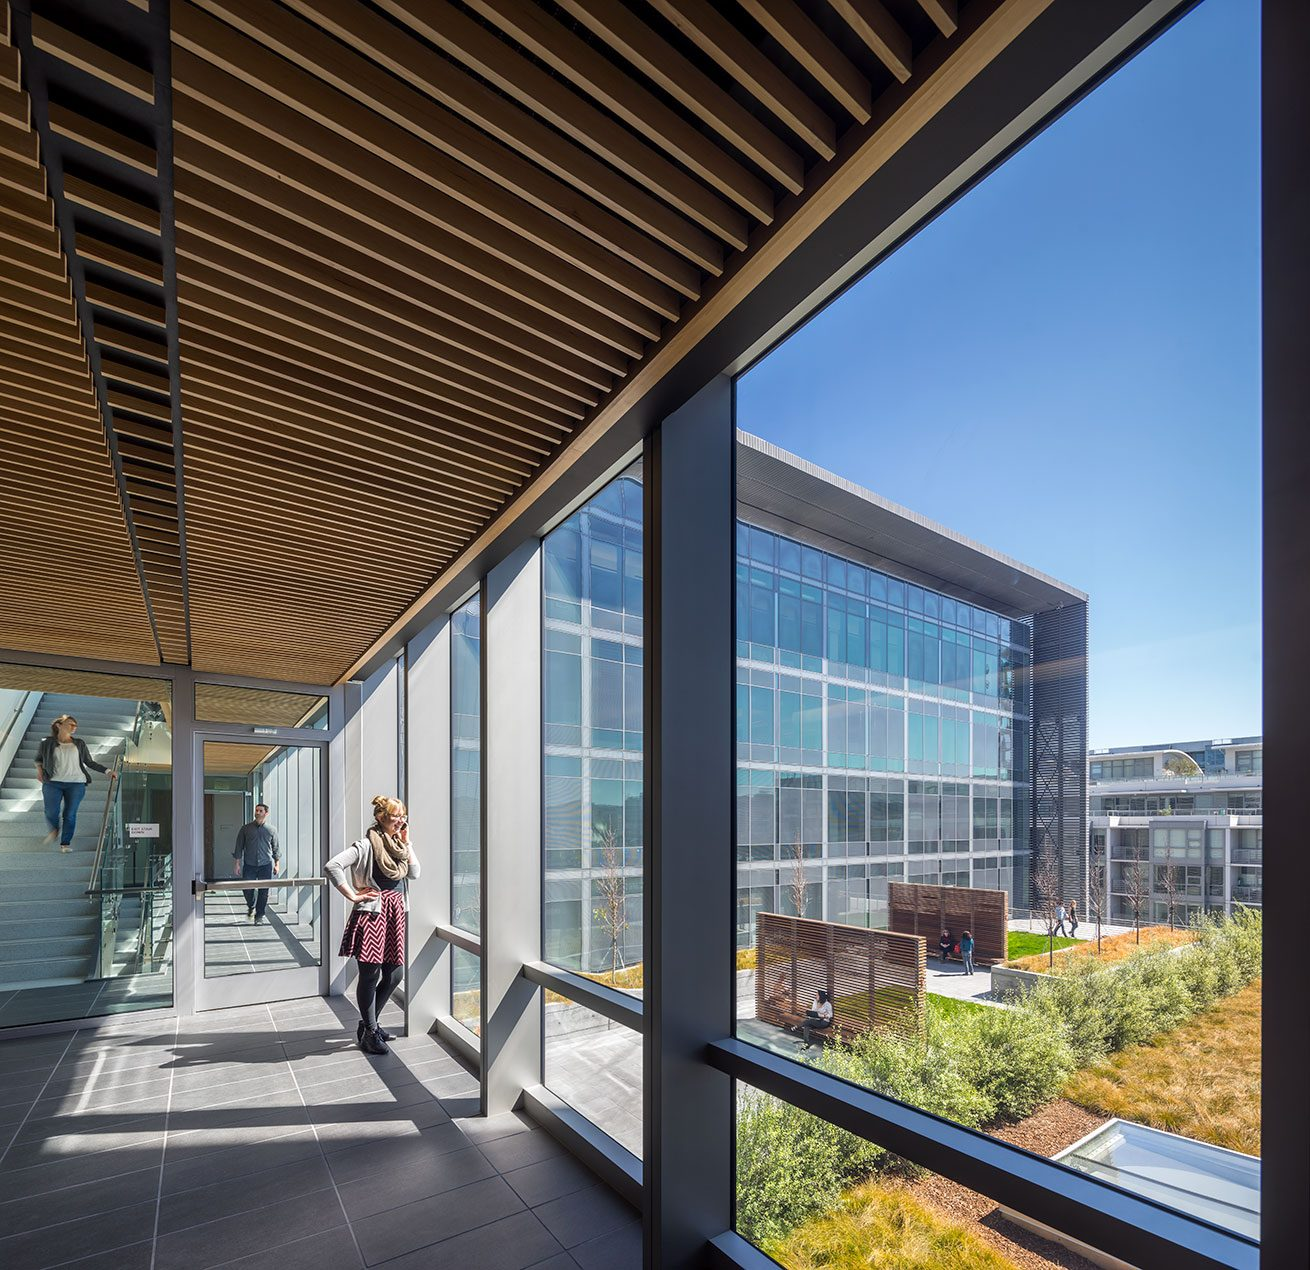 HOK: A global design, architecture, engineering and planning firm